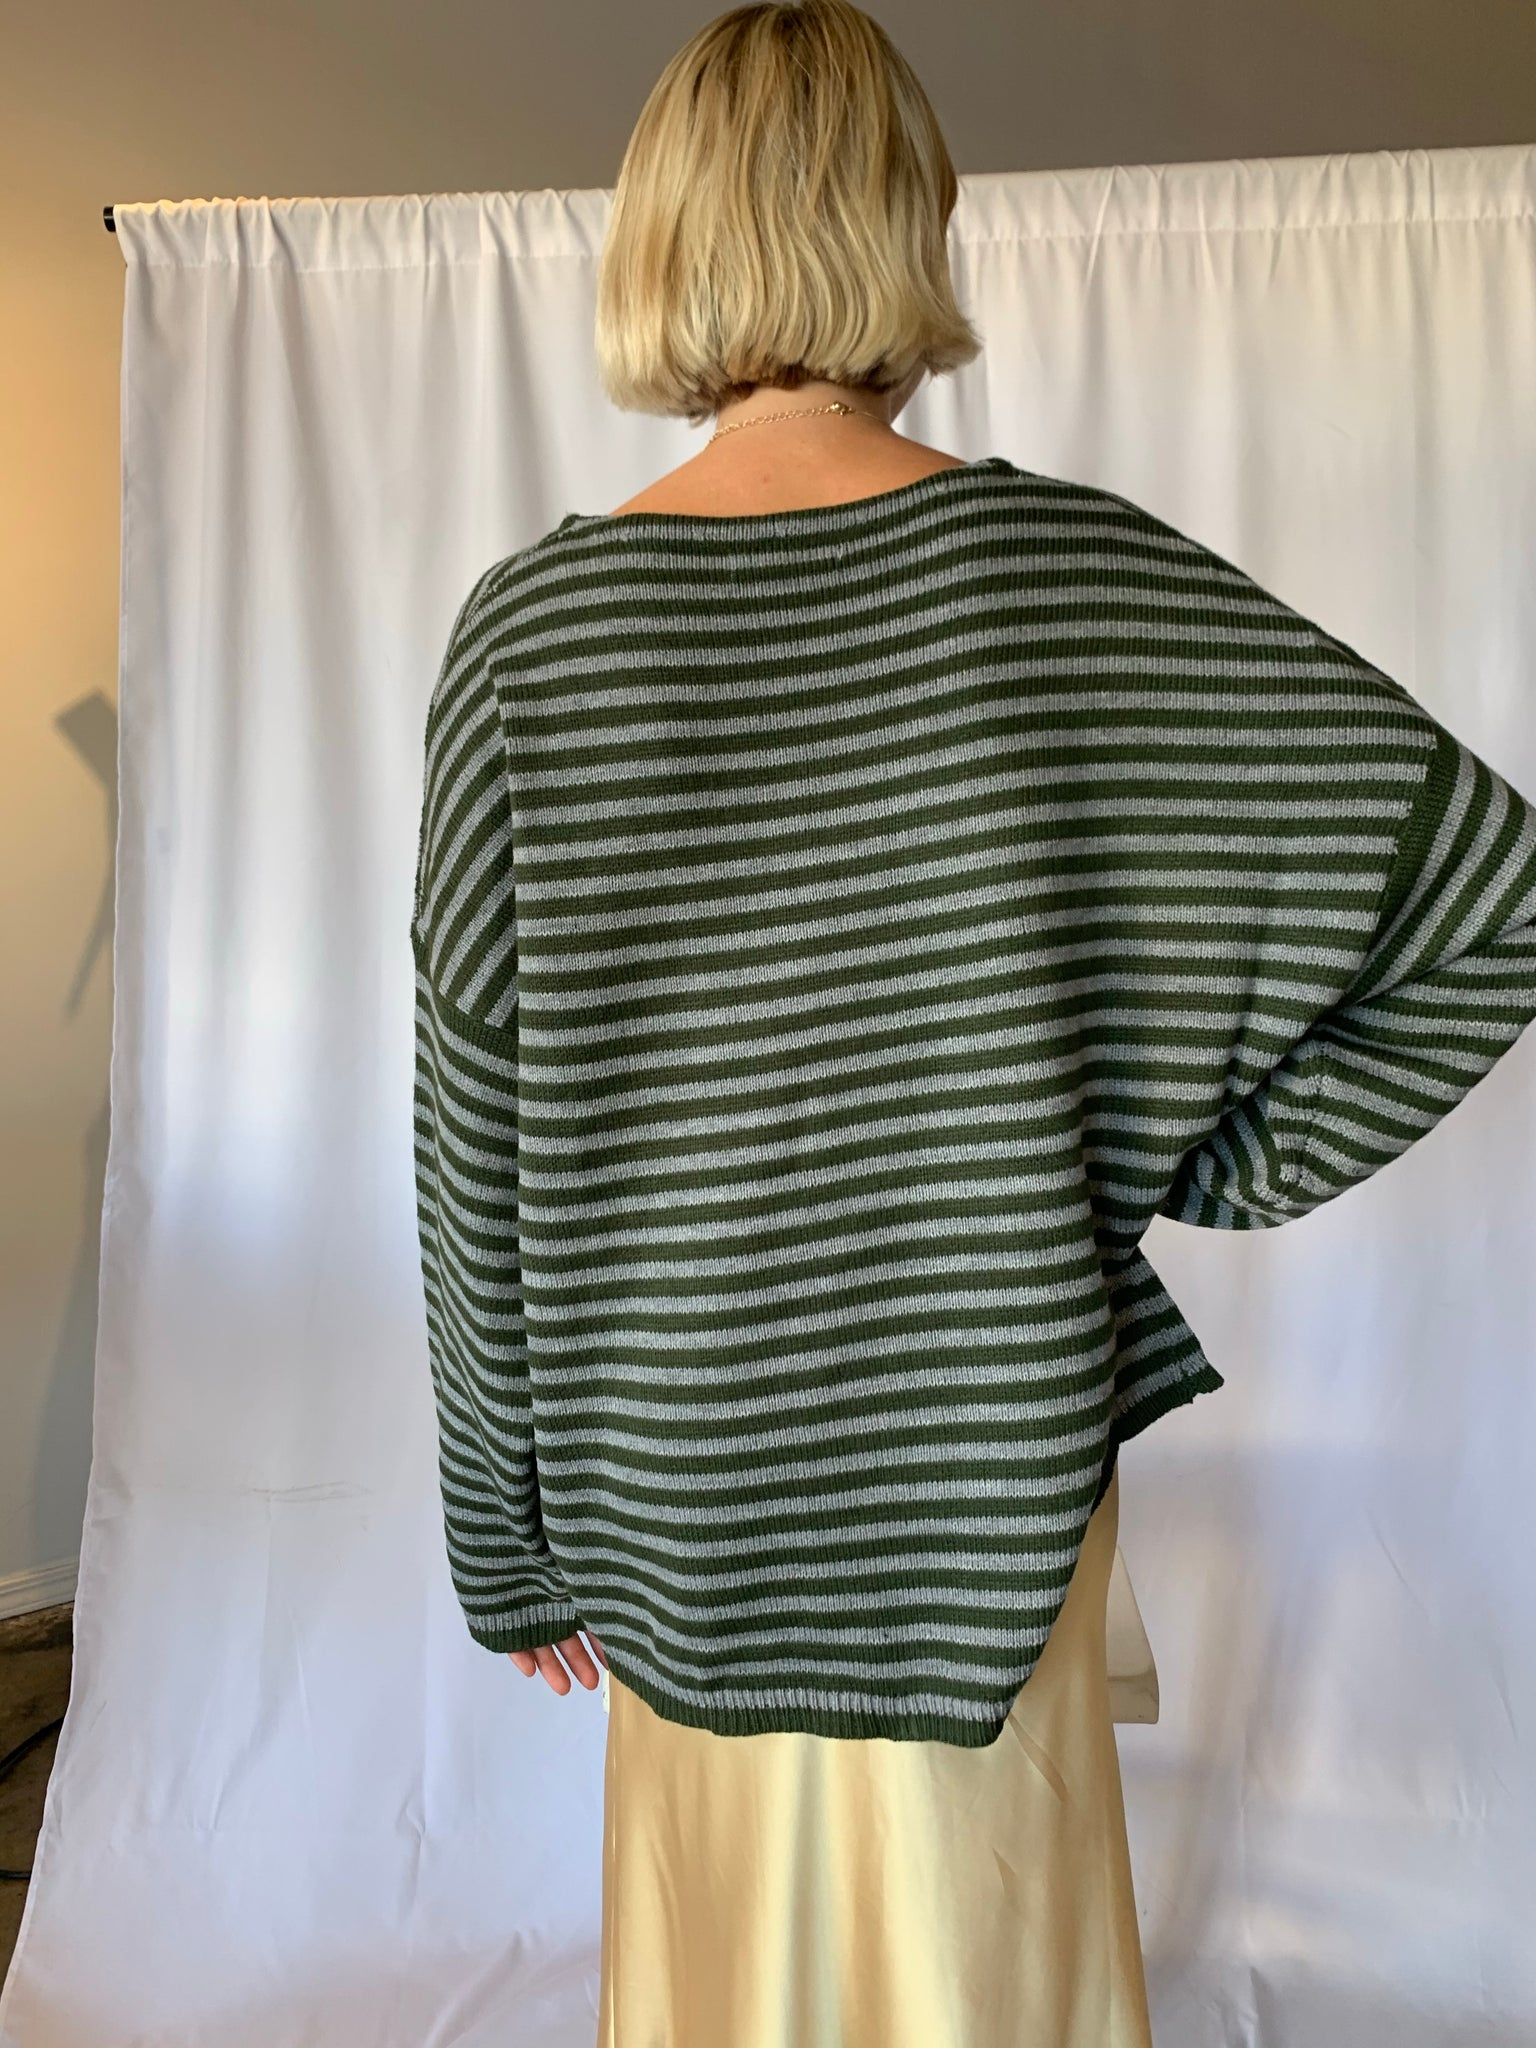 Green and Gray Striped Sweater - SISTER LB